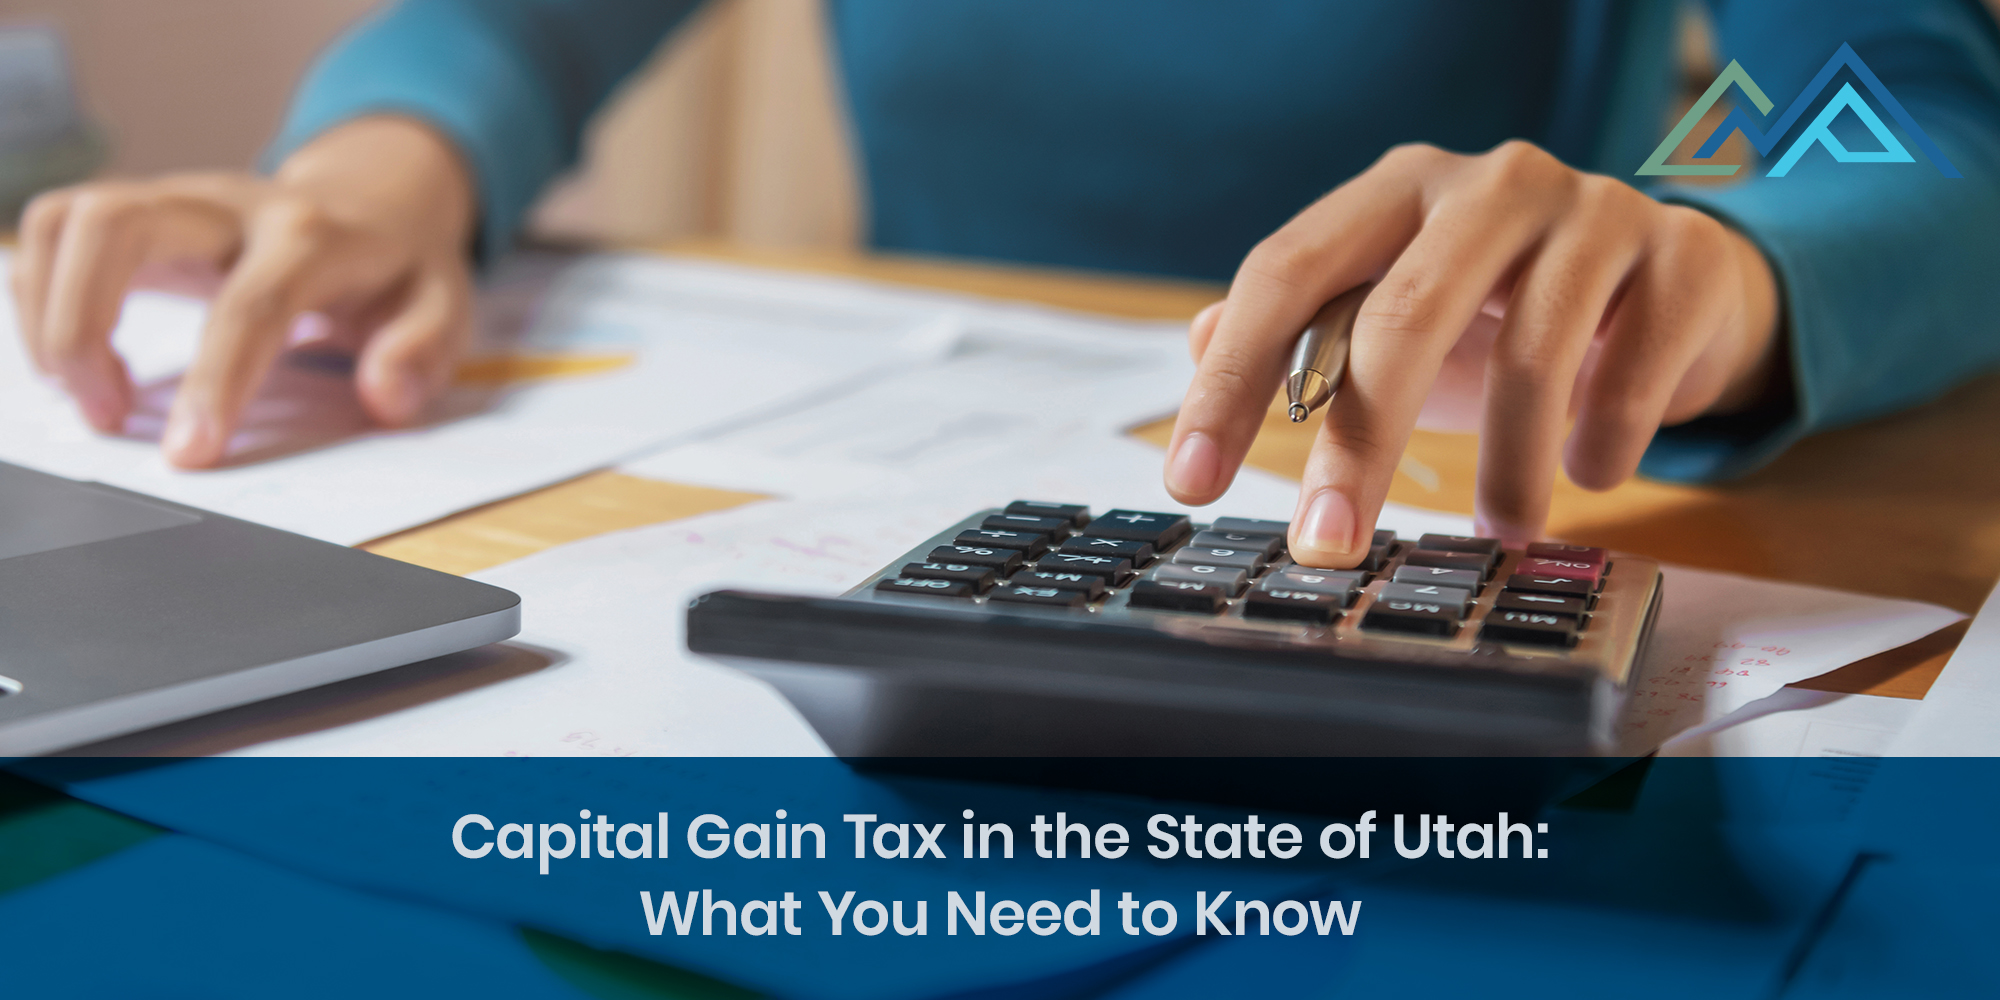 Capital Gain Tax in the State of Utah What You Need to Know